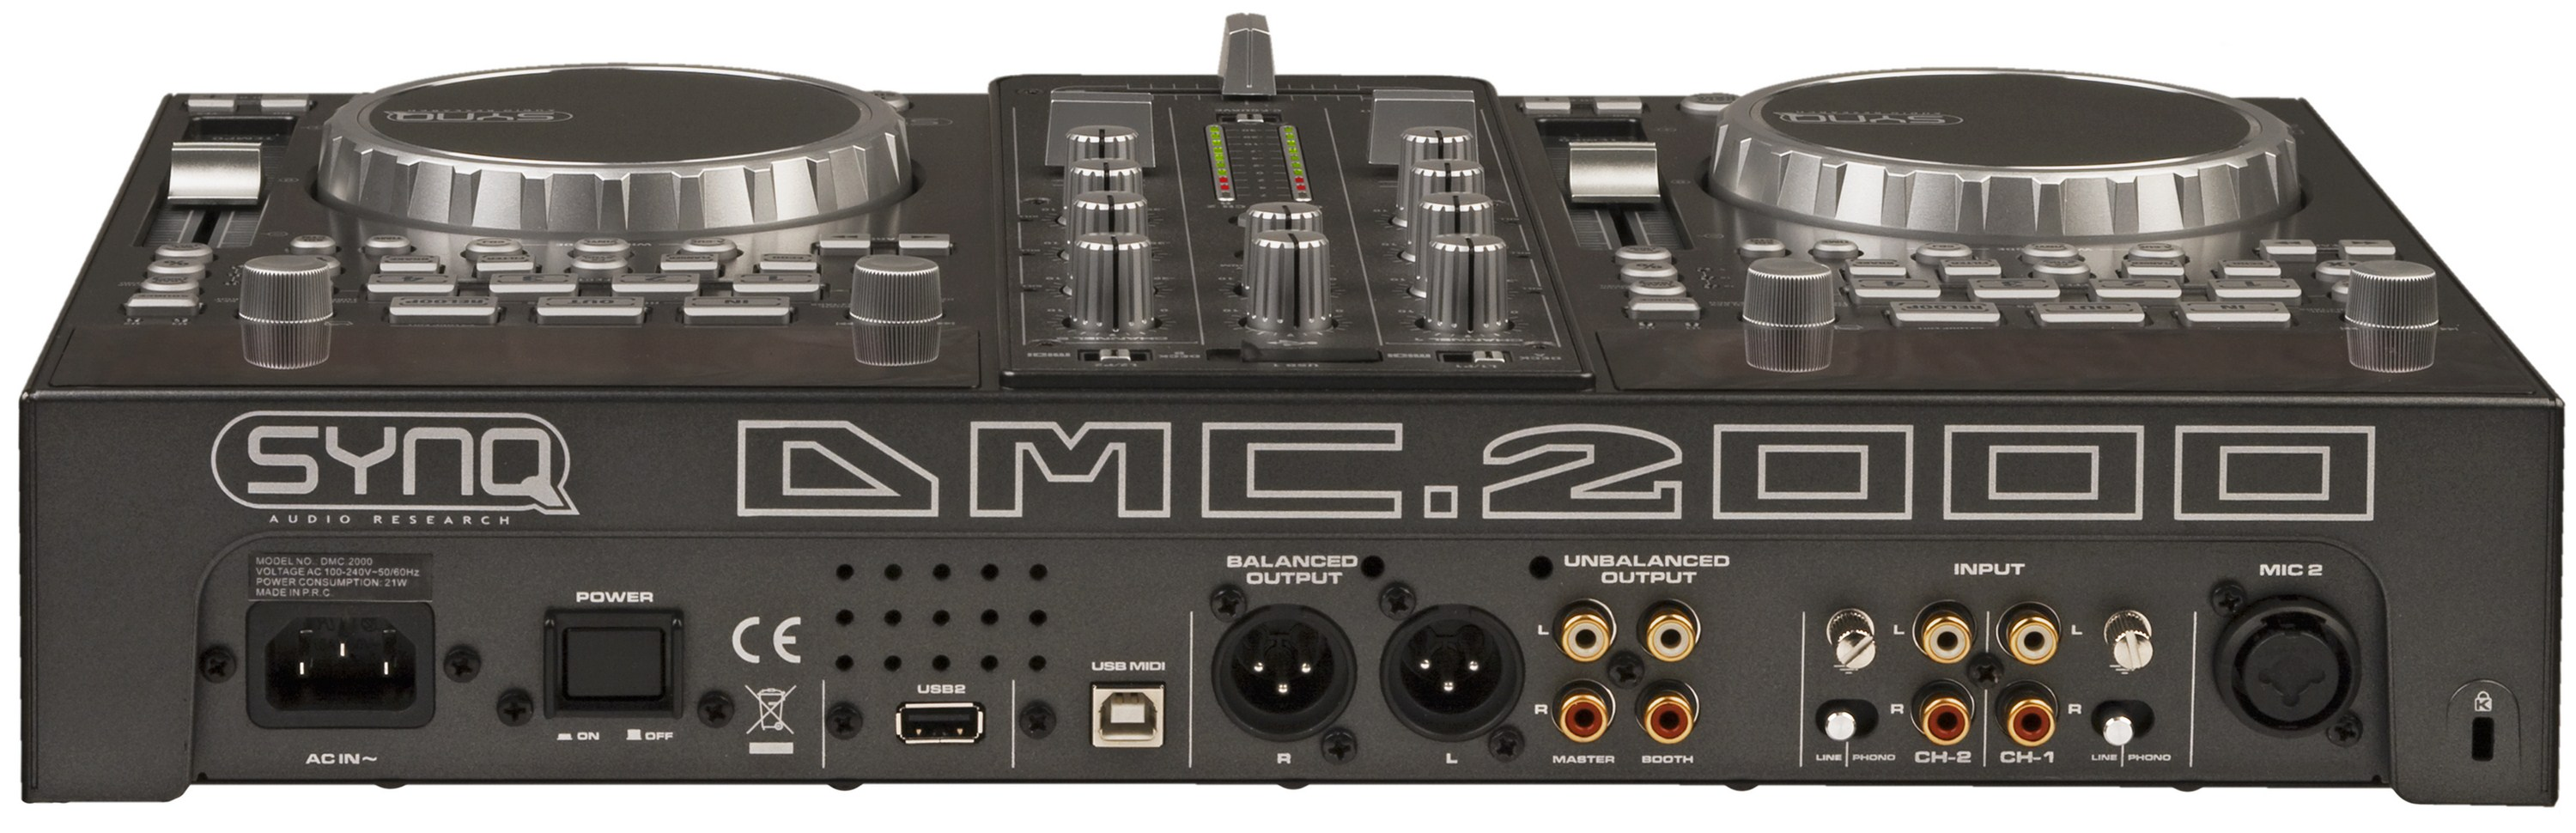 SYNQ - DMC-2000 - MP-3 & USB players